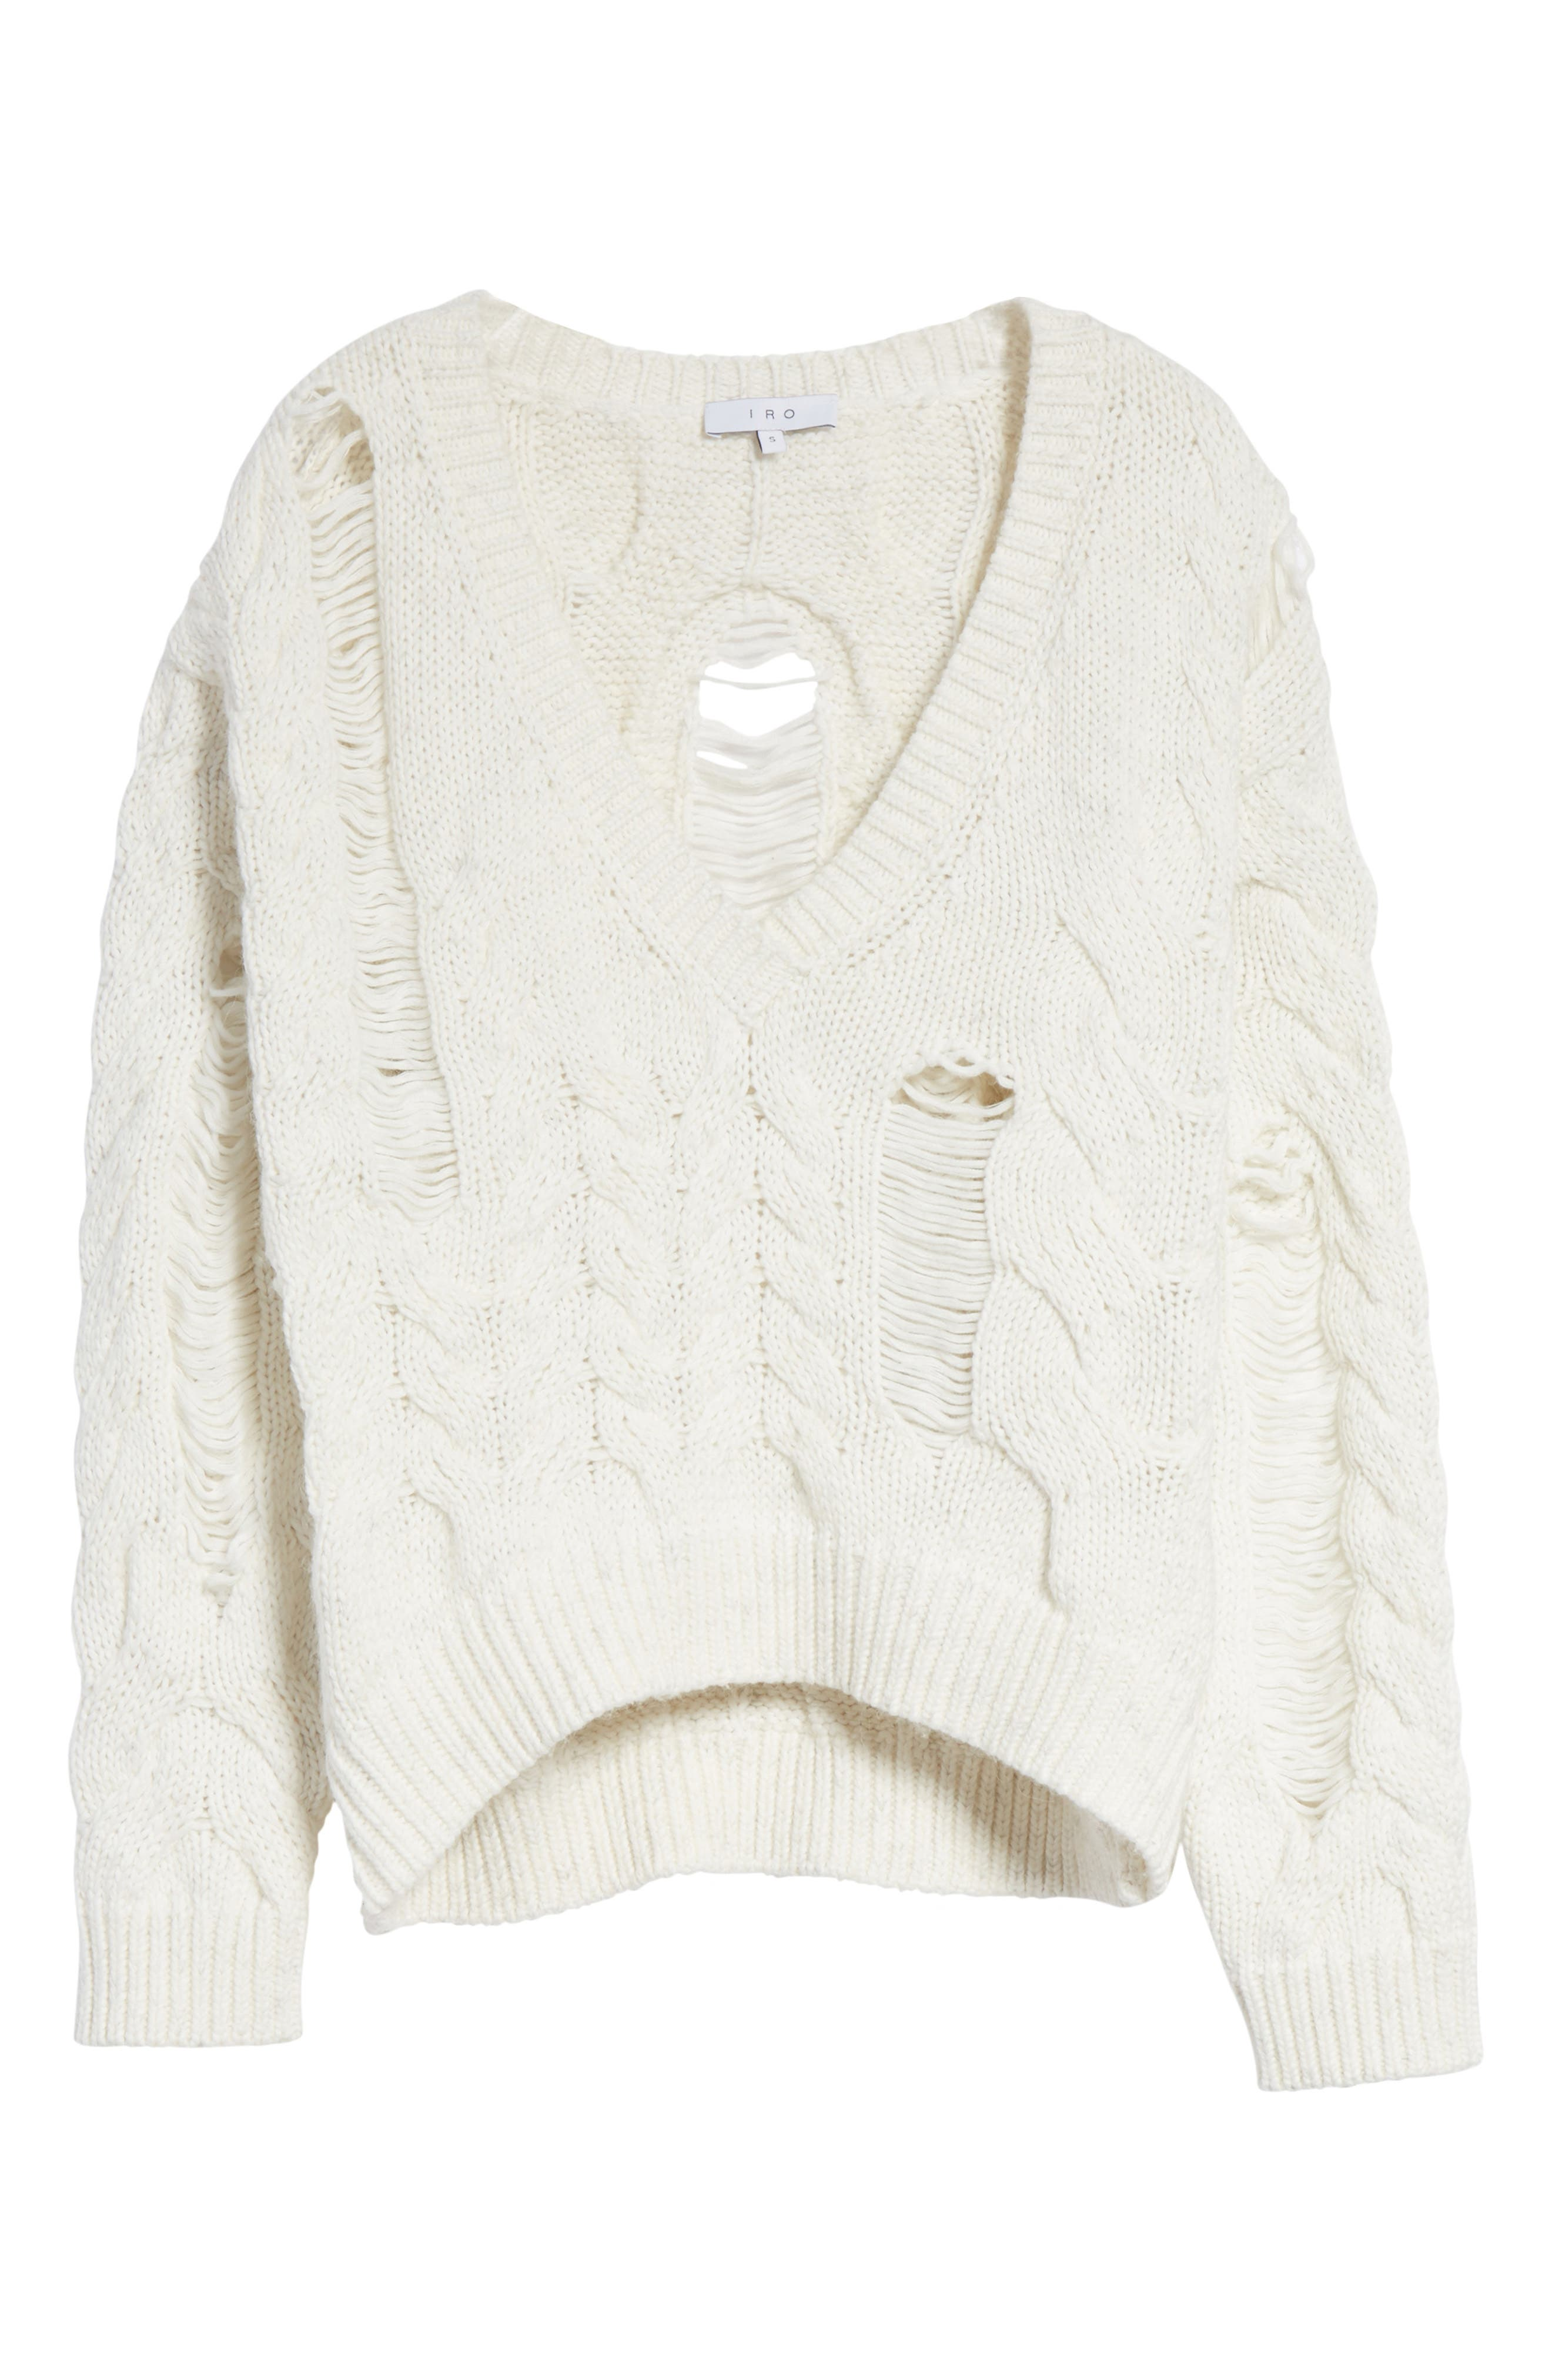 Fighla Distressed Sweater,                             Alternate thumbnail 6, color,                             010